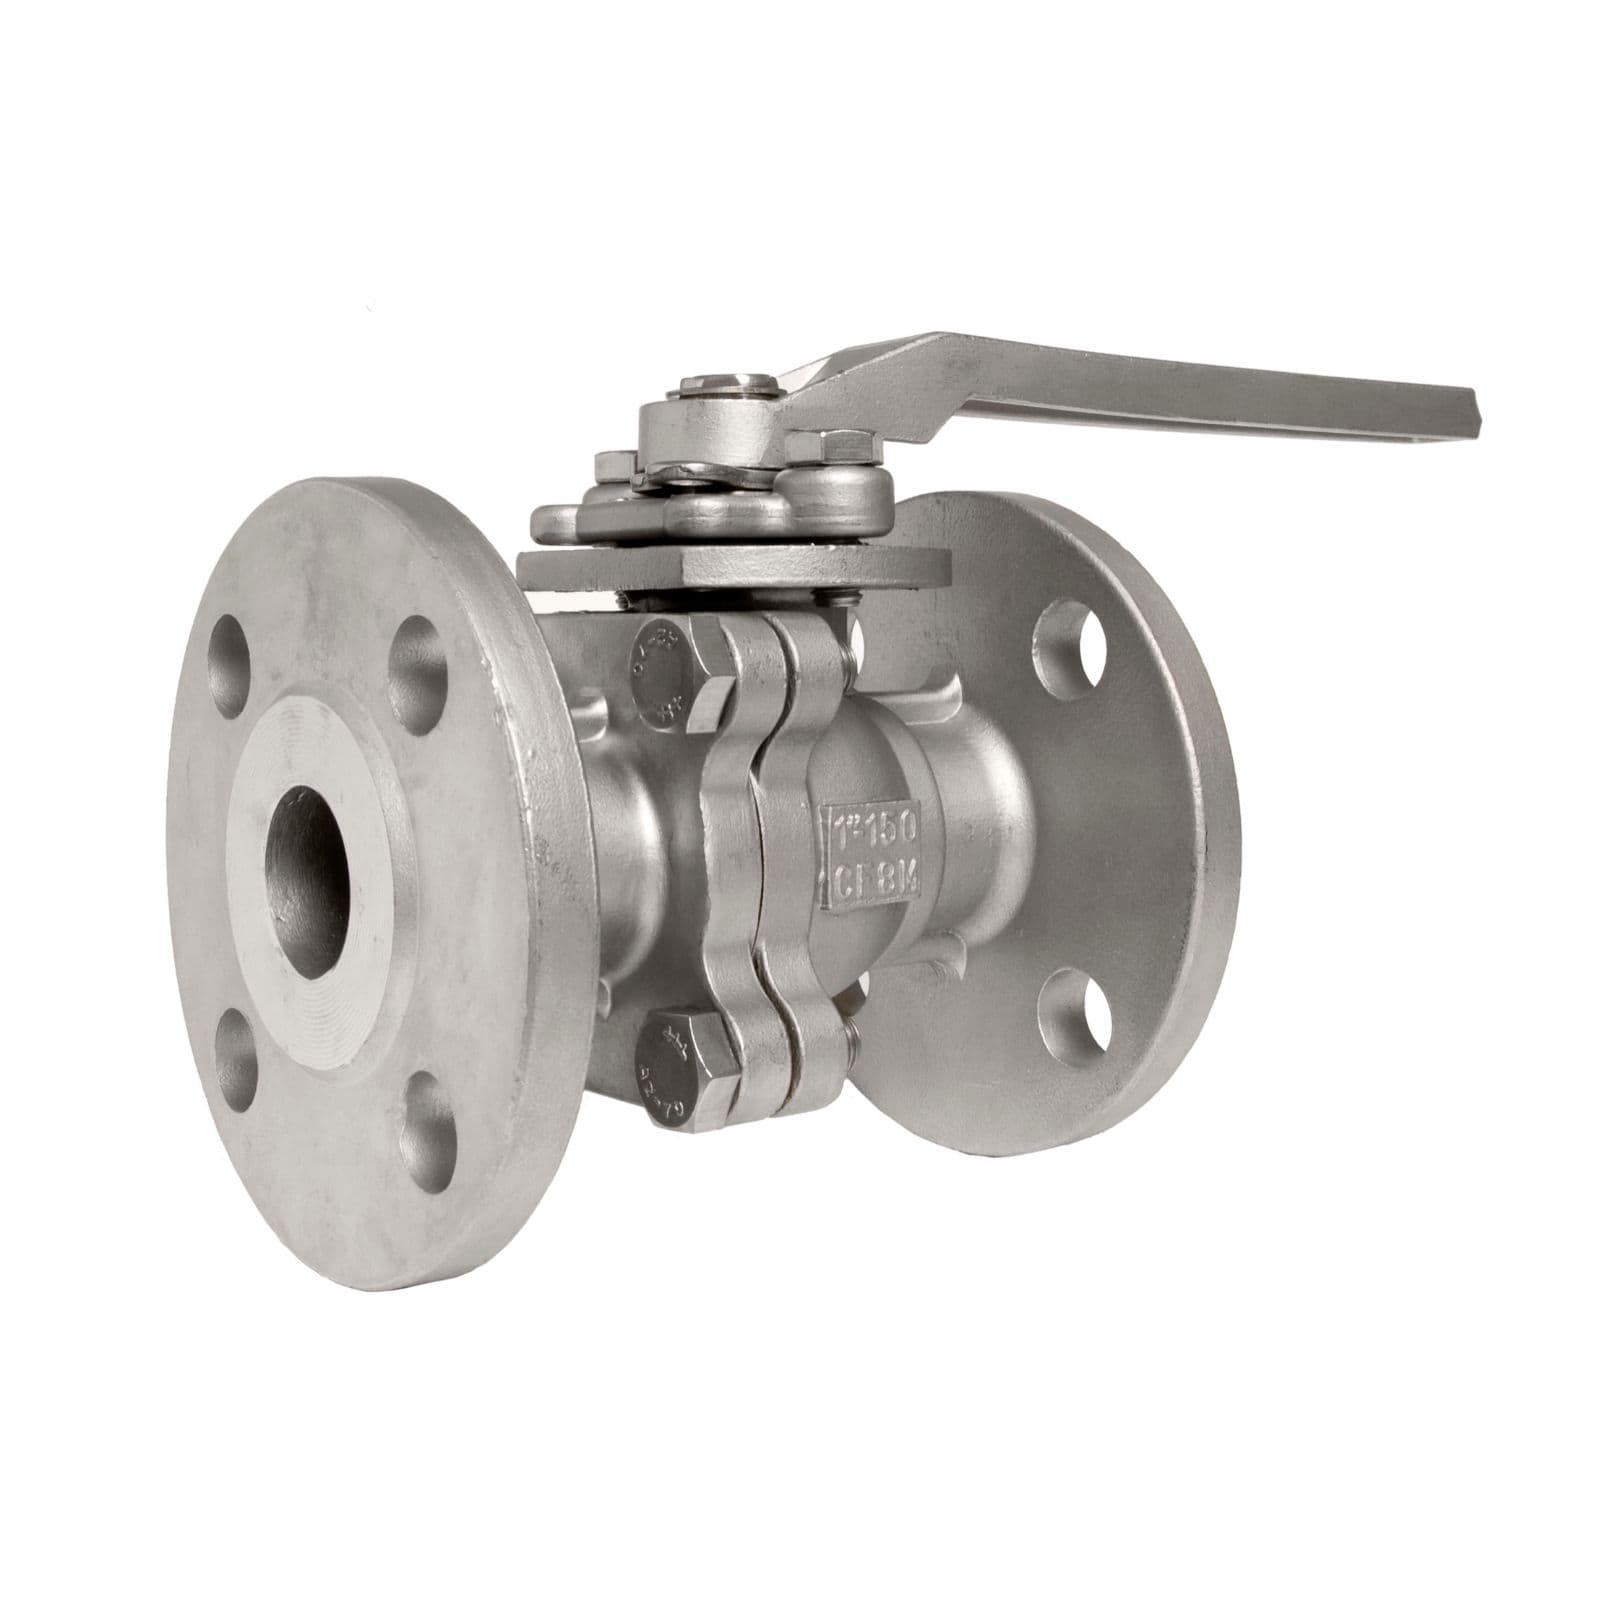 Stainless Steel (316) Flange Ball Valve - 2 Piece, ANSI-Class 150 lb